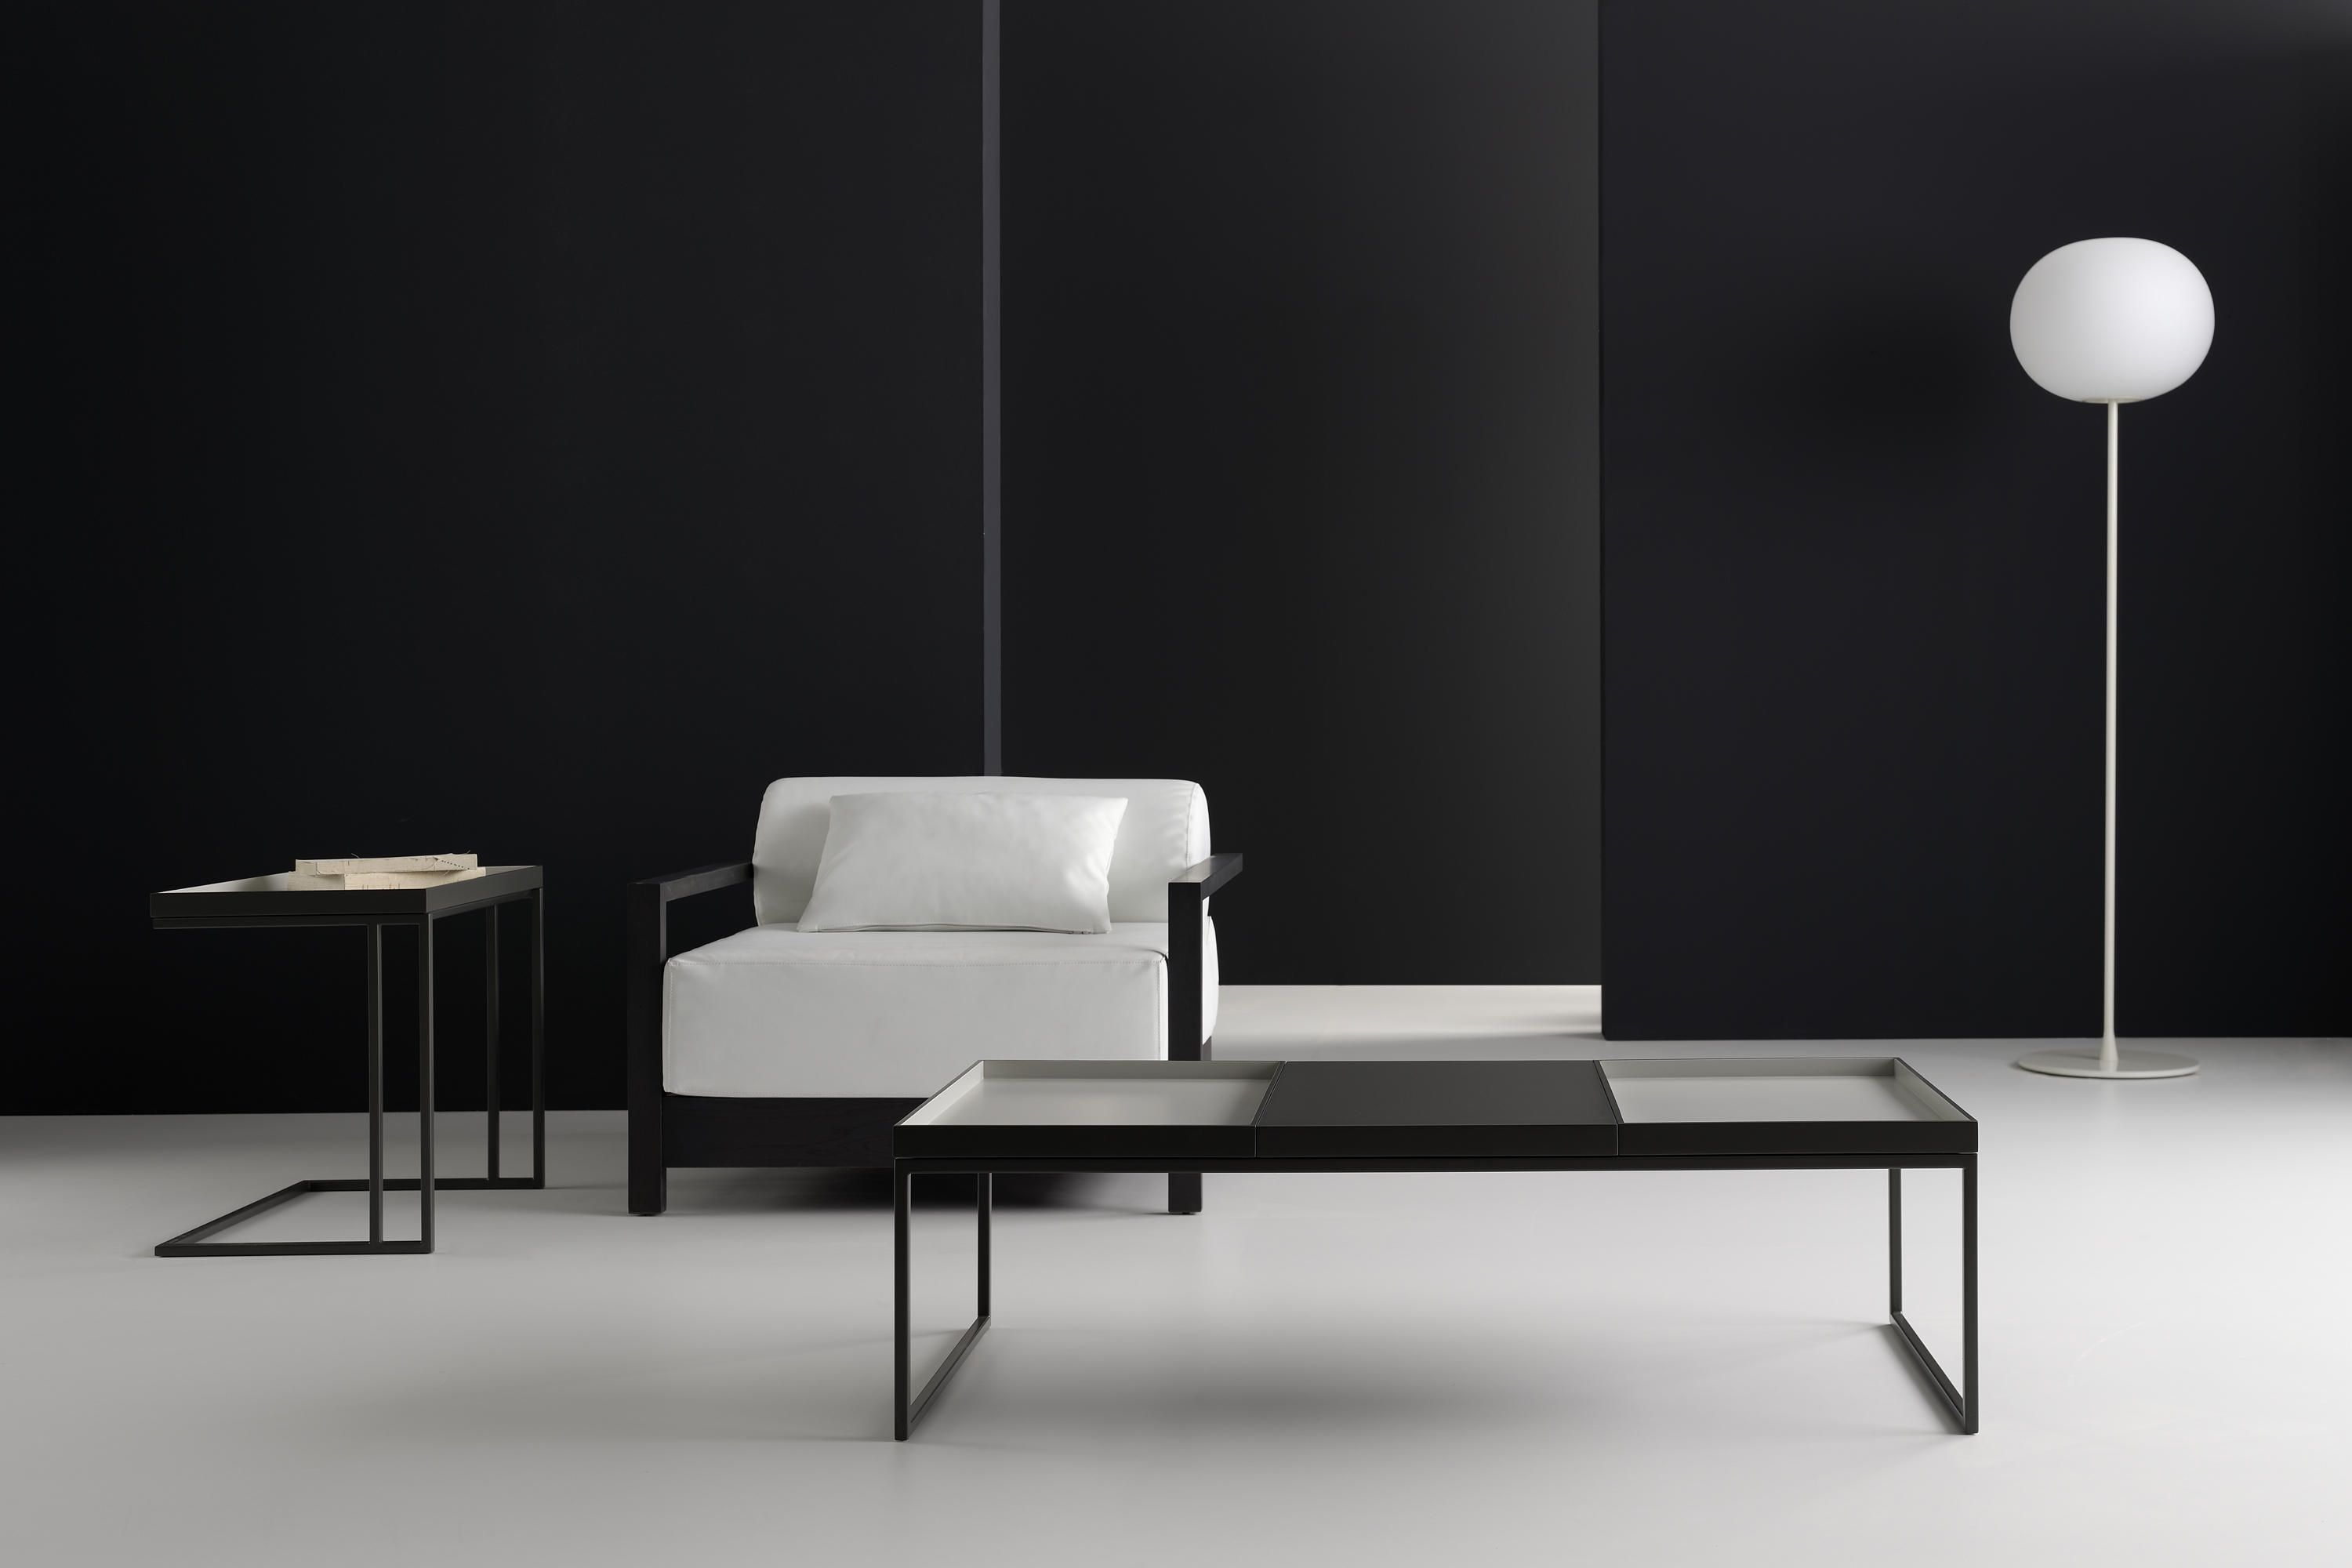 Tray 64 side tables from kendo mobiliario architonic - Kentto mobiliario ...